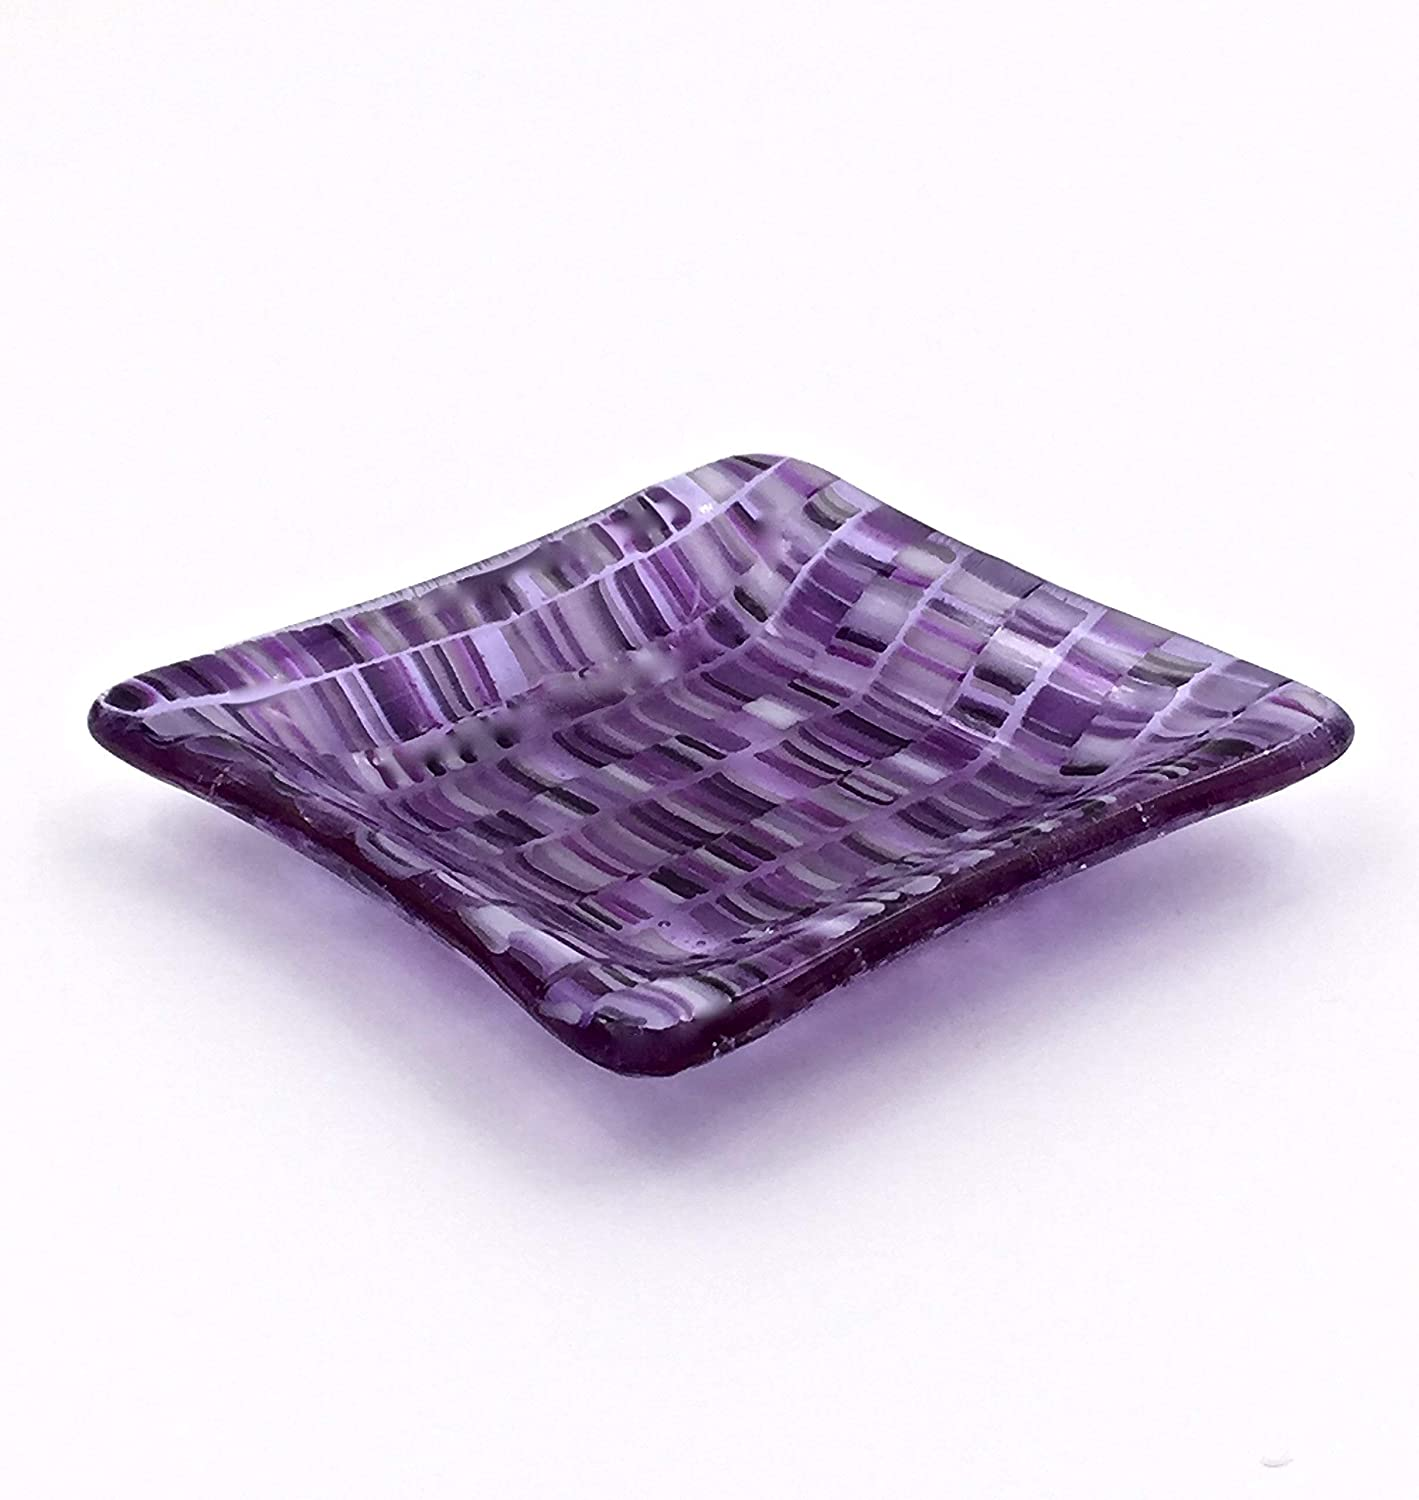 Handcrafted 4 Inch Fused Glass Decorative Bowl in Purple 81pT349CHIL